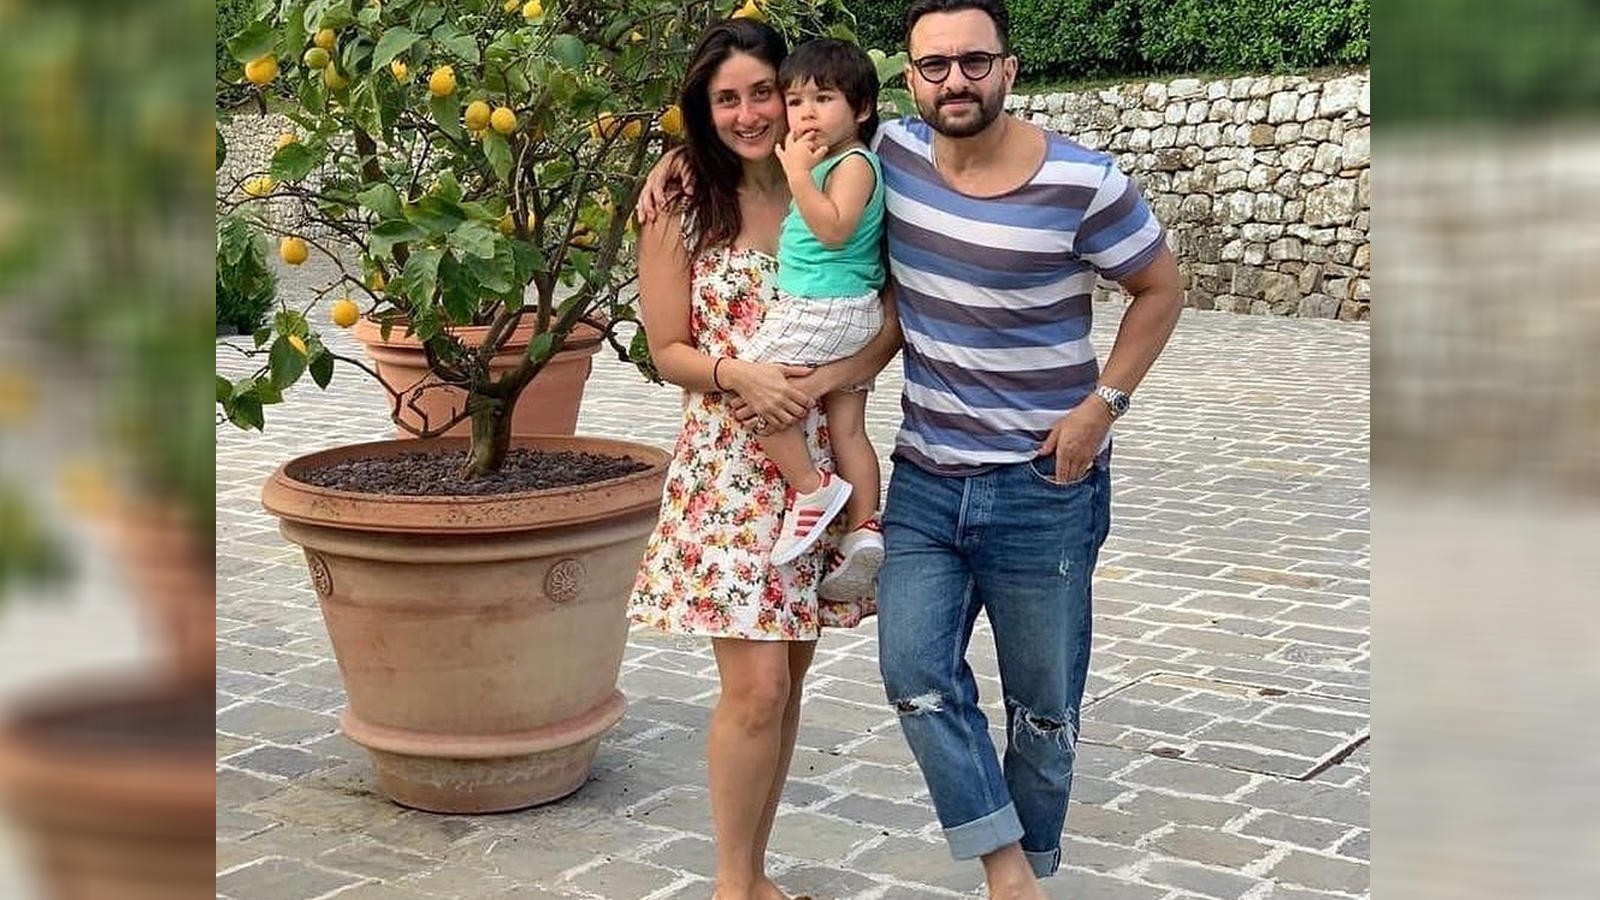 kareena-kapoor-opens-up-on-having-a-second-child-actress-says-she-is-happy-with-taimur